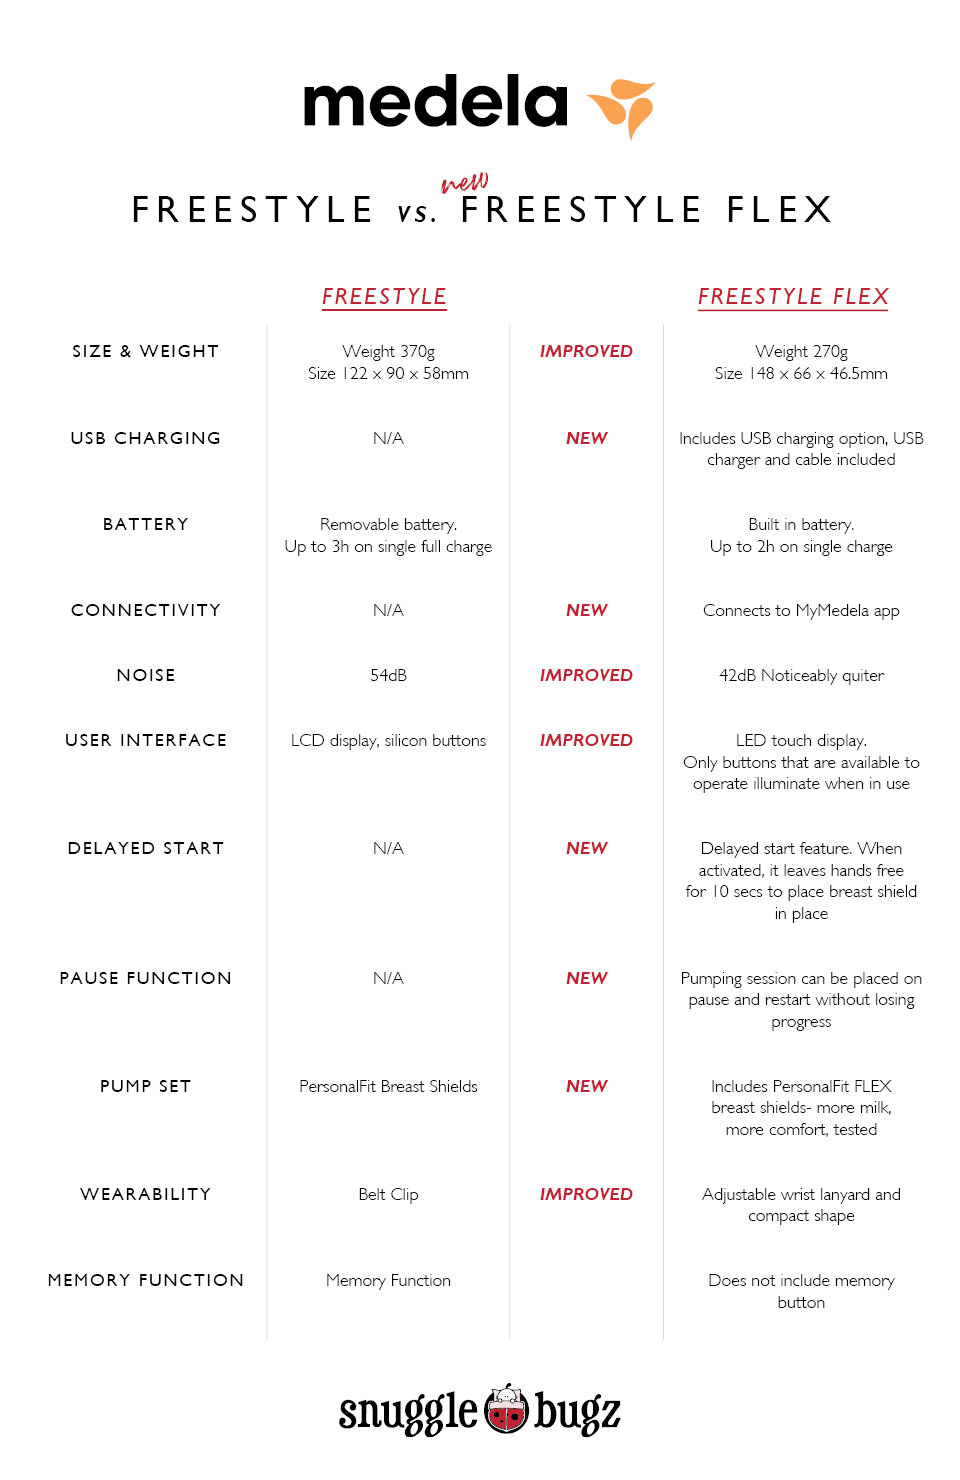 medela-freestyle-flex-vs-freestyle-chart